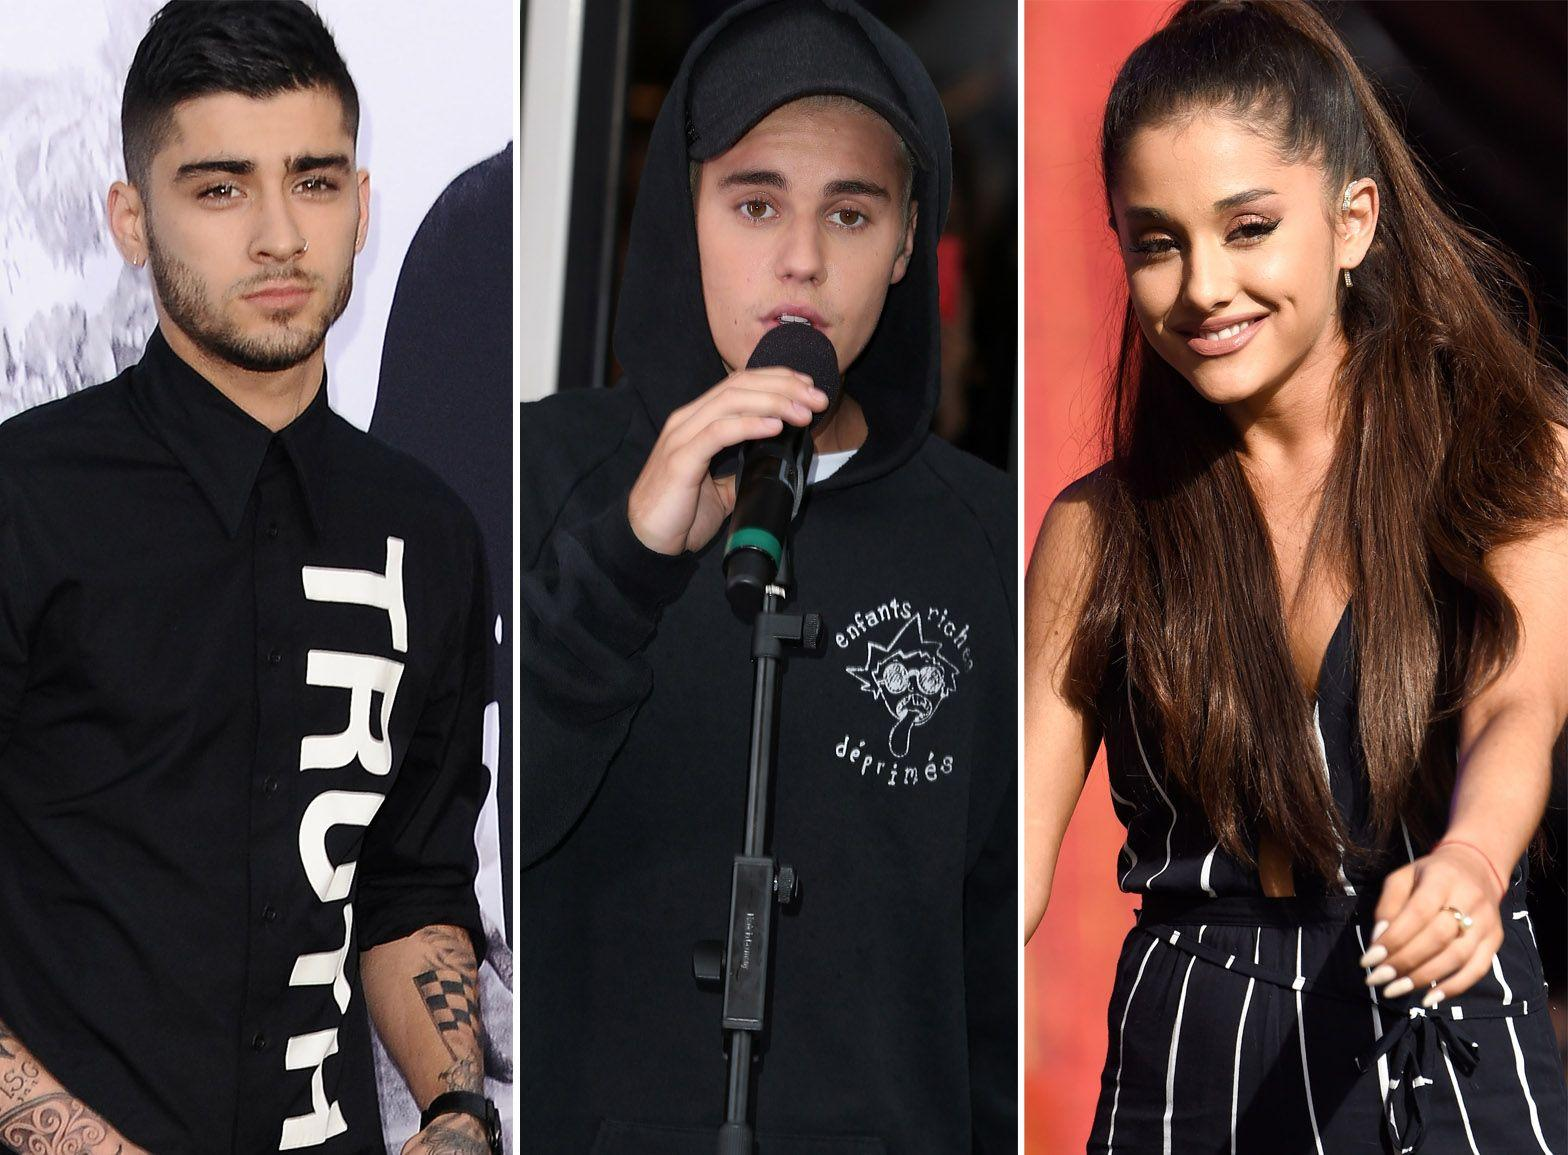 Justin Bieber And Ariana Grande Wallpapers Wallpaper Cave